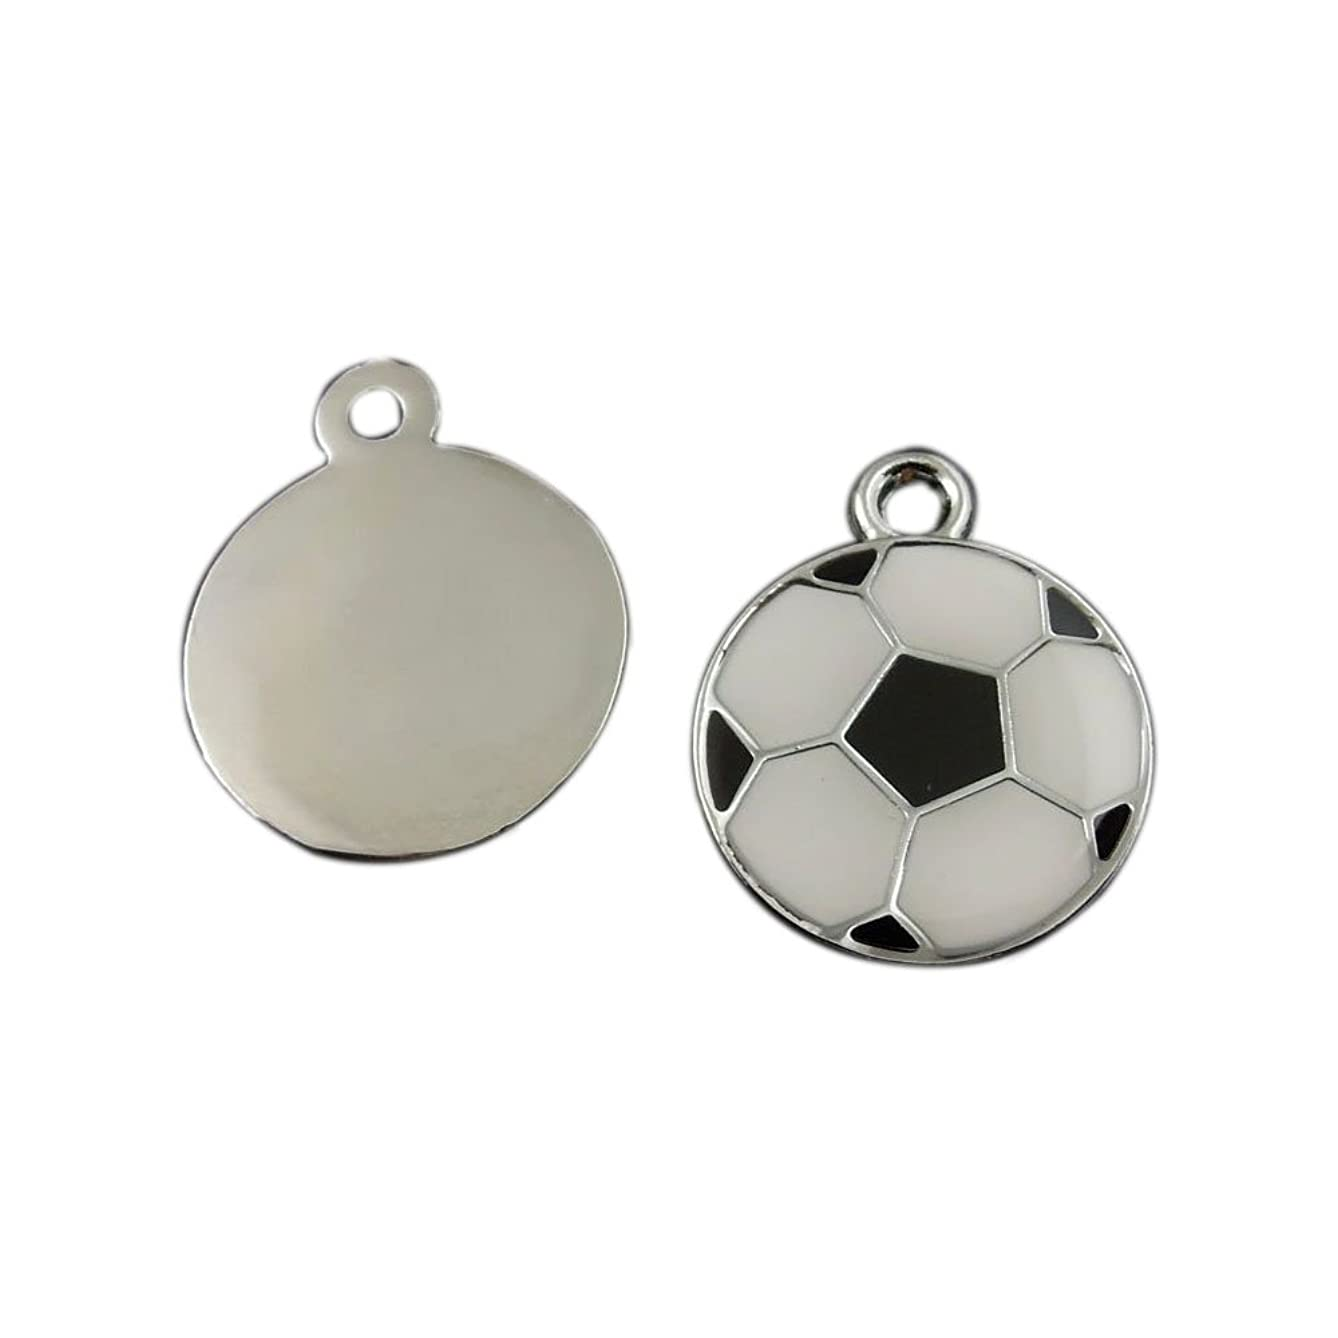 Julie Wang 20pcs Enamel Soccer Football Charms Silver Black White for Women Jewelry Necklace Making Pendants